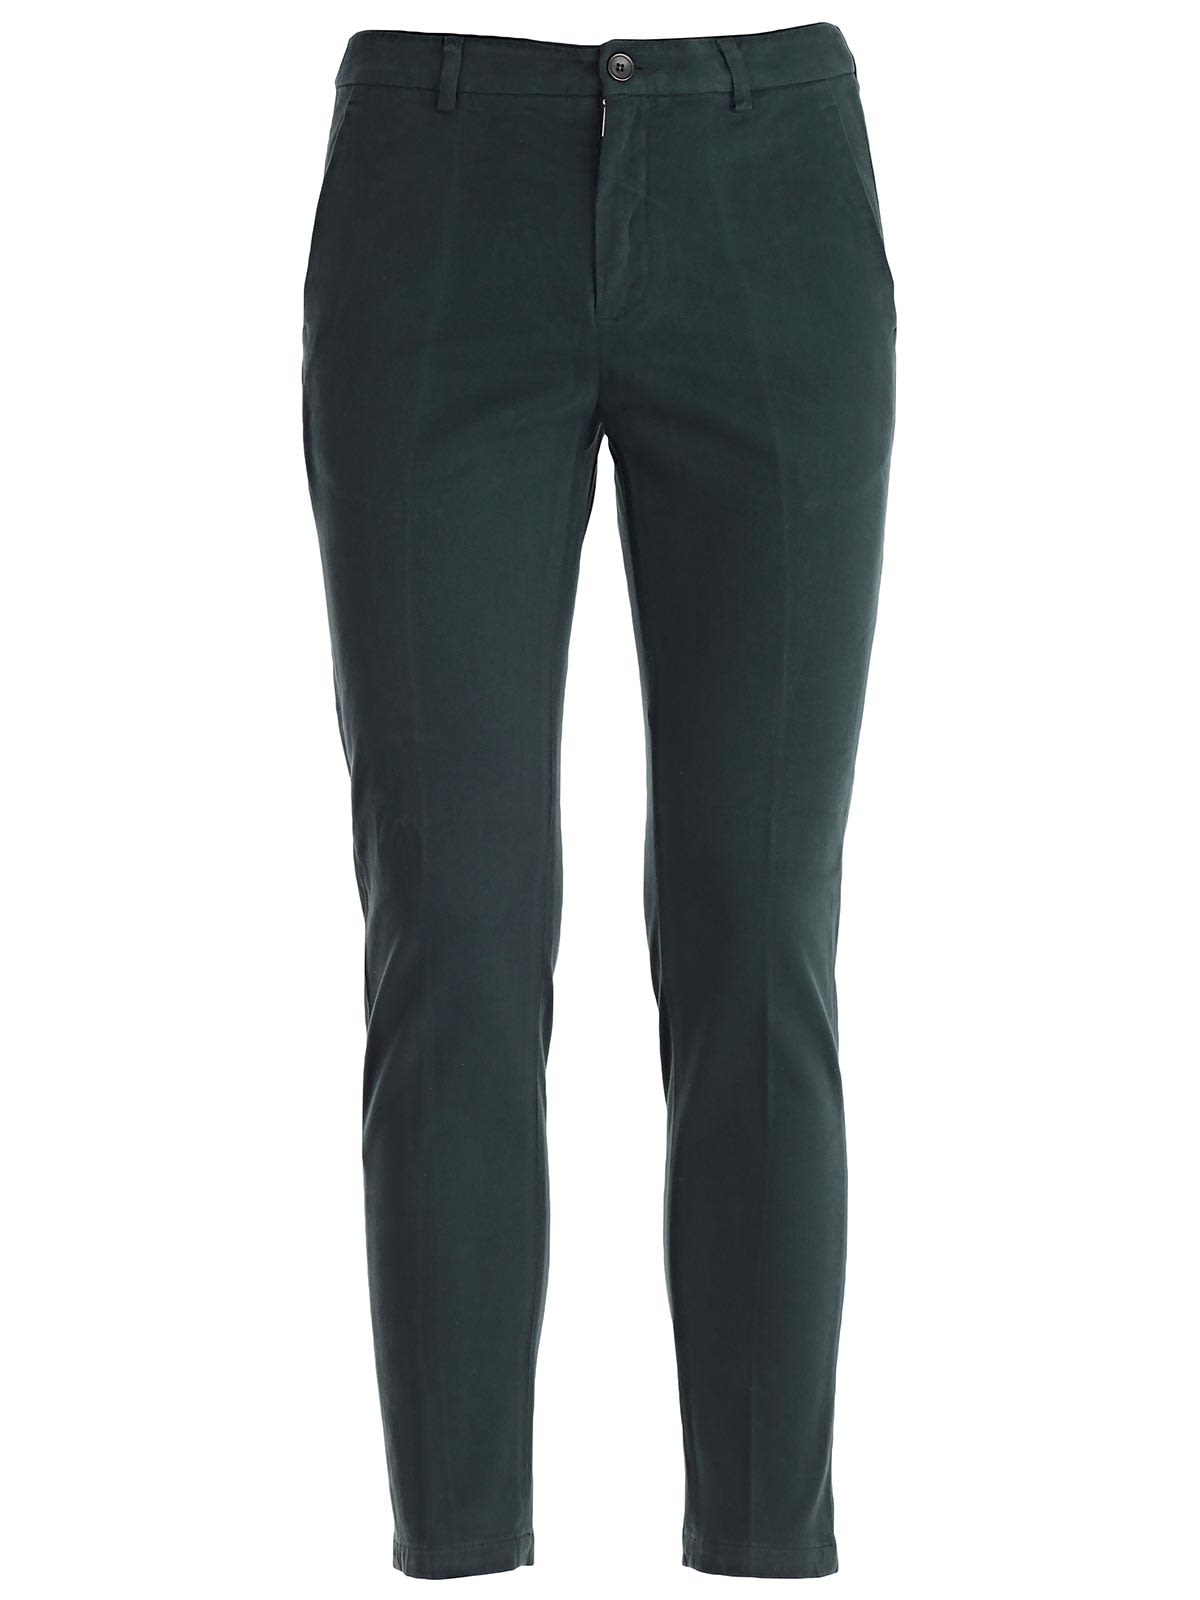 DEPARTMENT 5 CLASSIC SLIM FIT TROUSERS